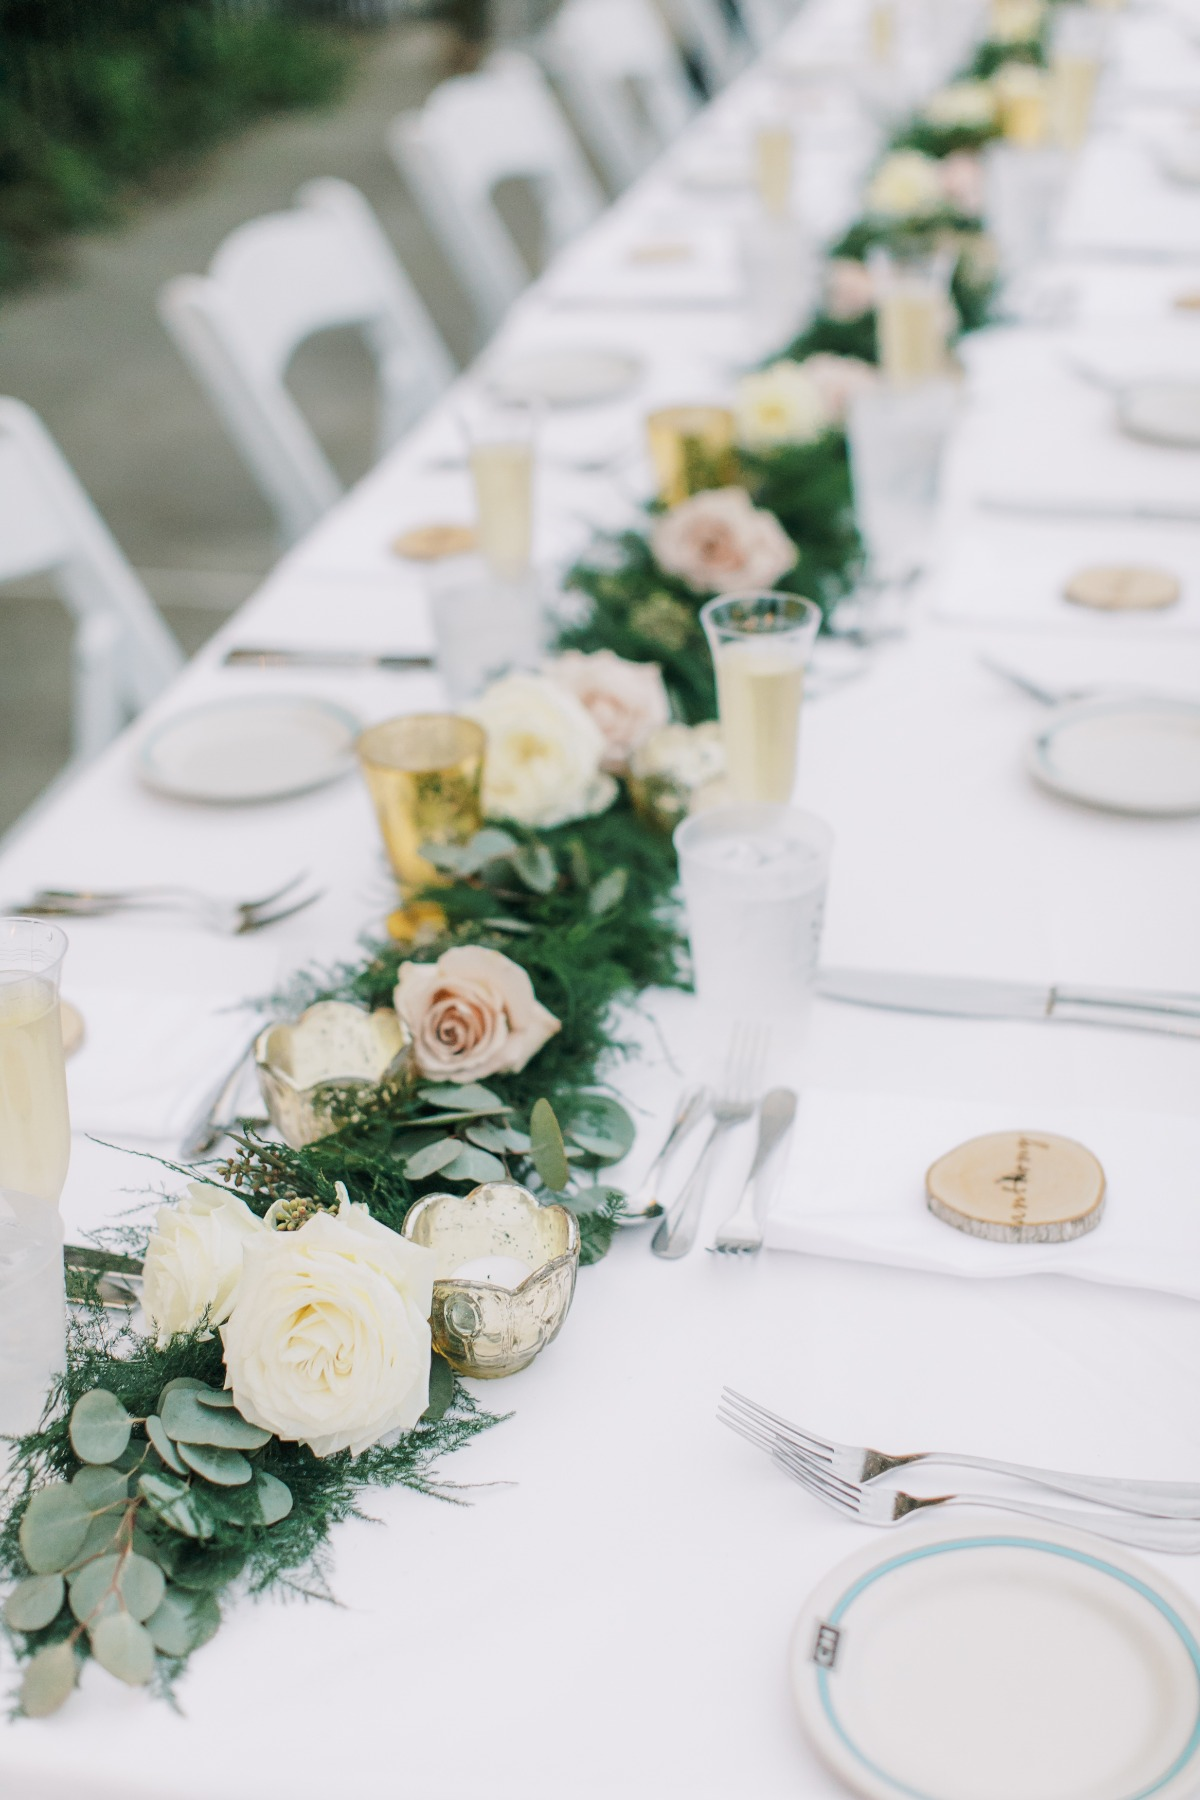 Greenery and rose centerpiece